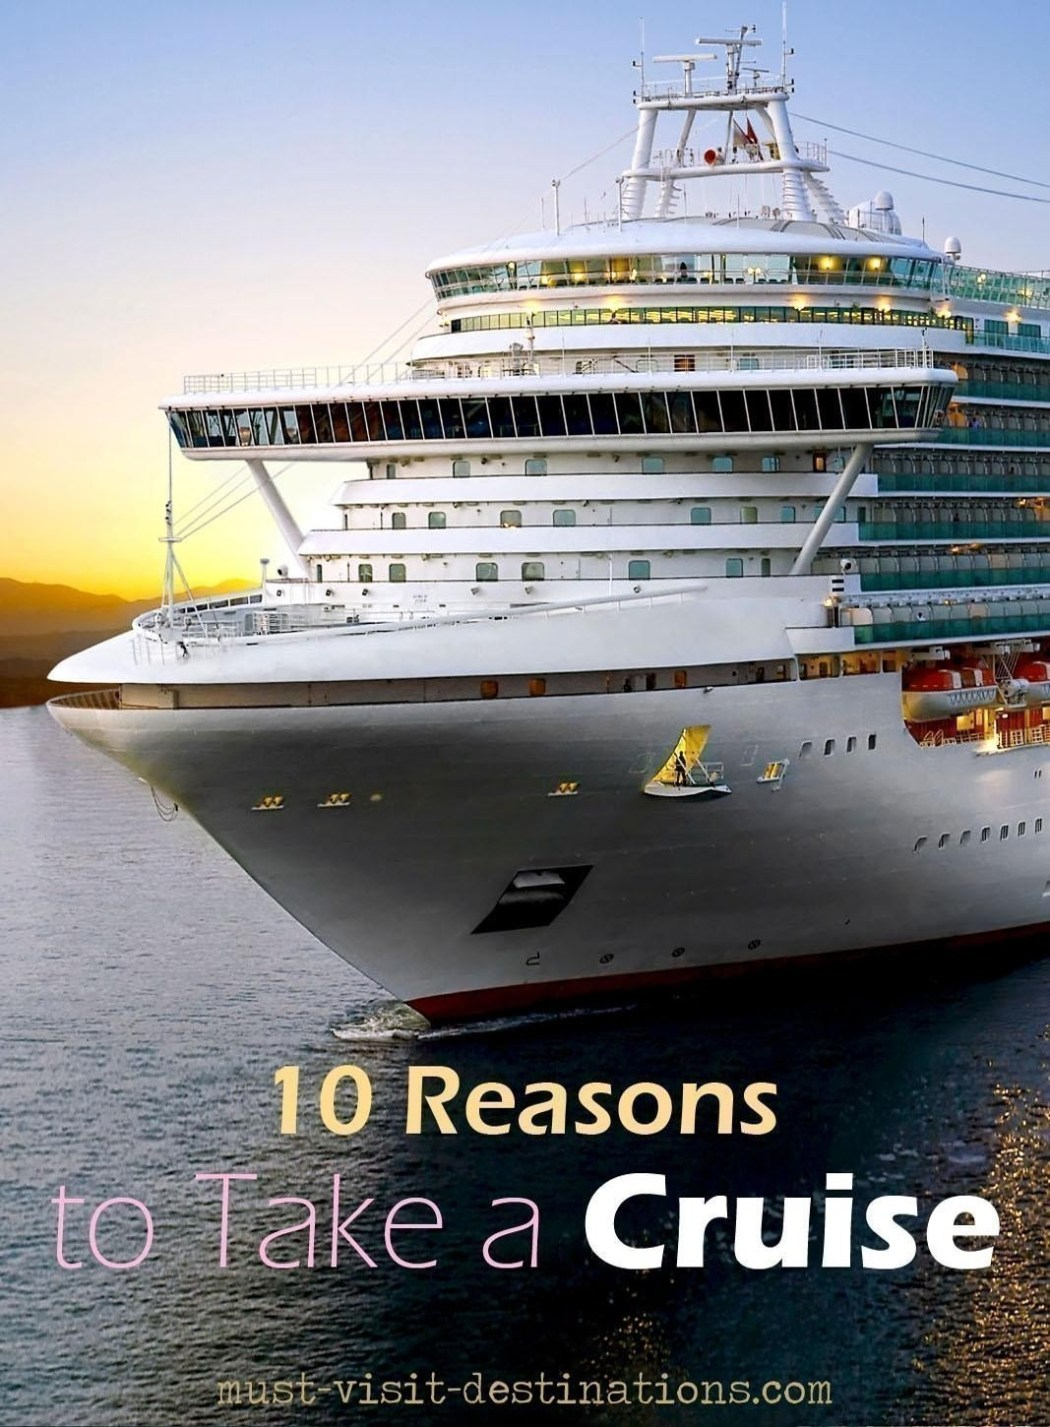 TOP 10 Reasons to Take a Cruise #travel #cruise